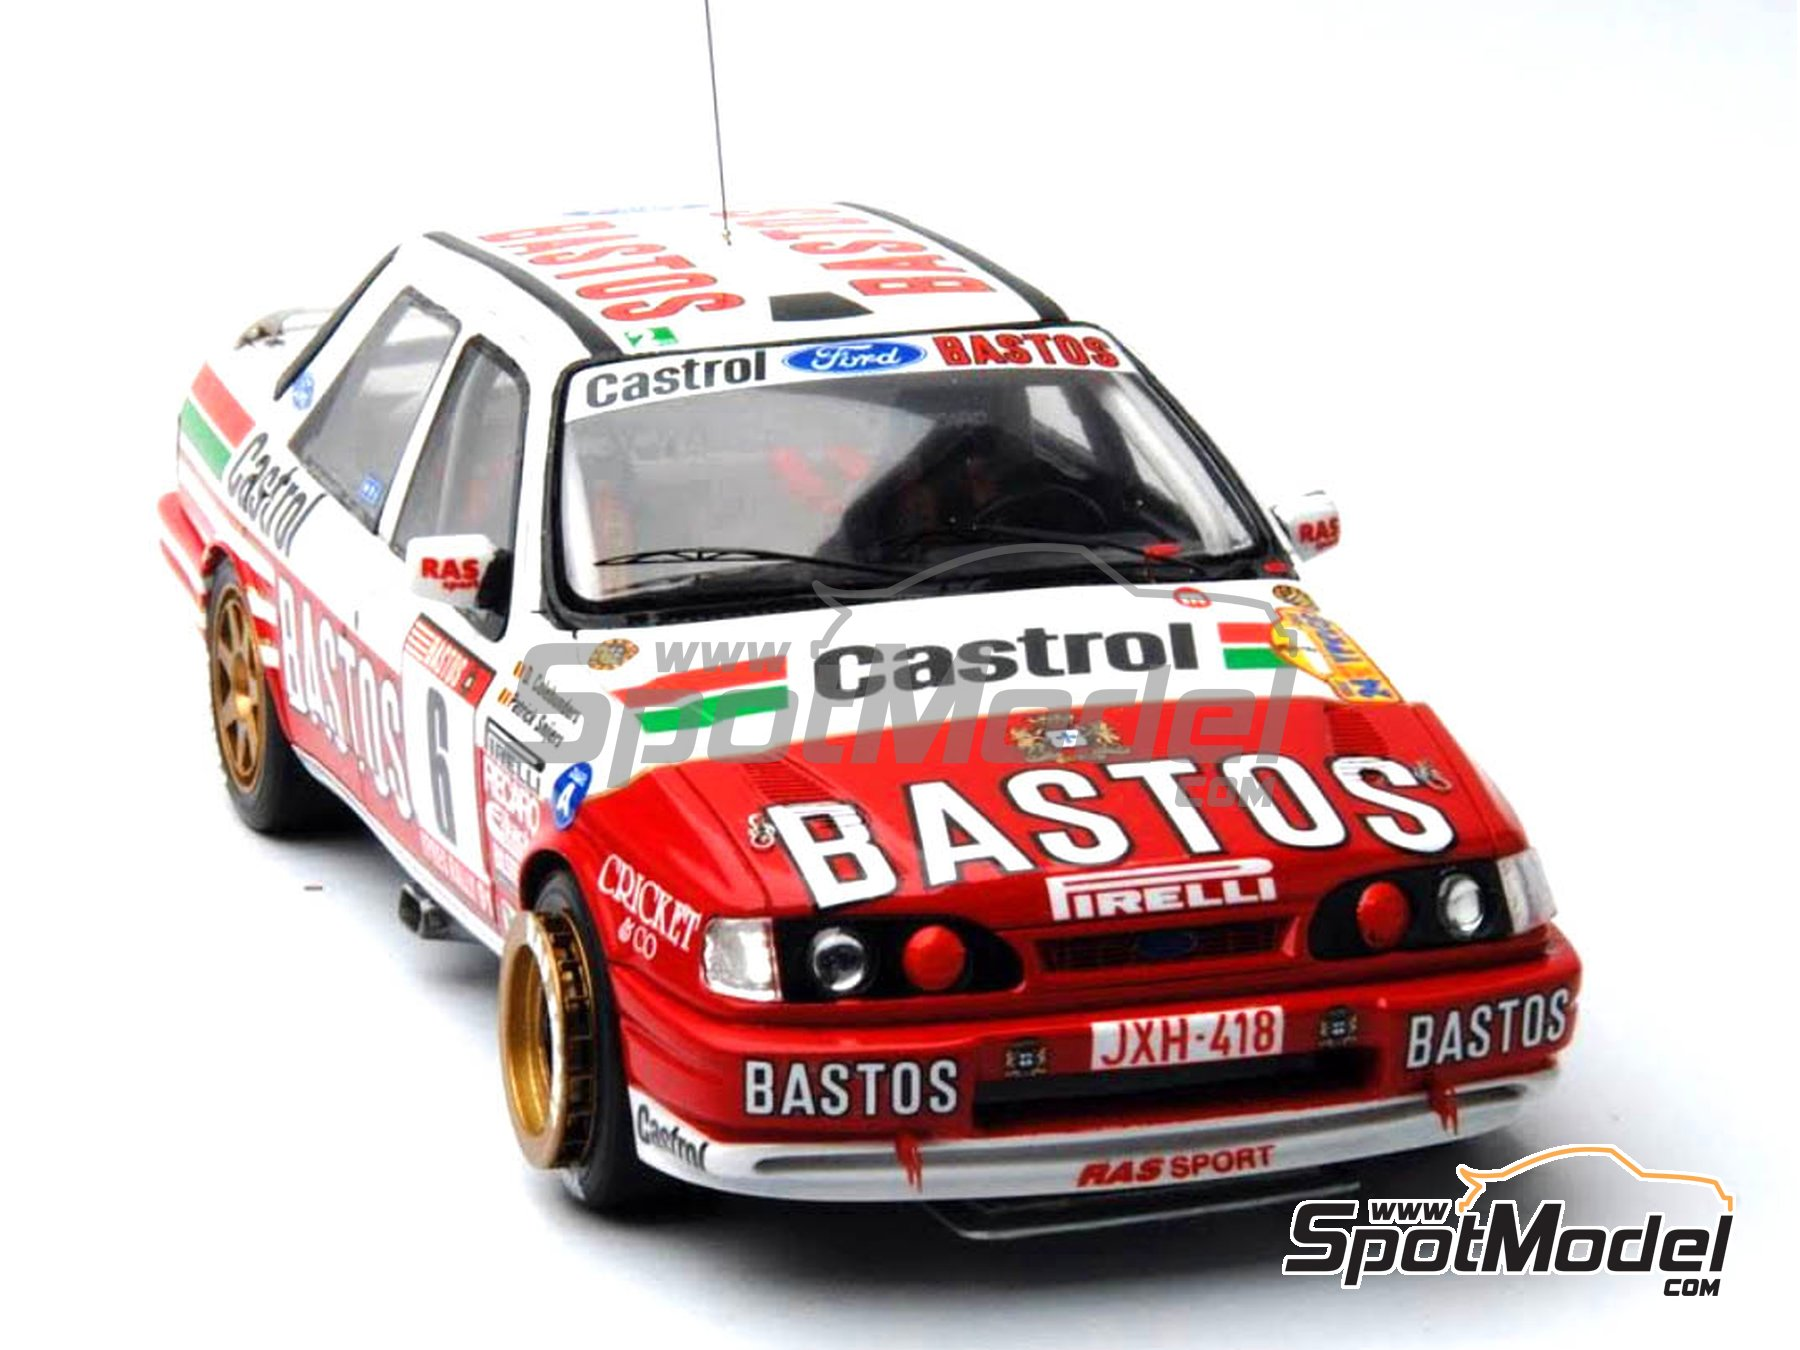 Image 19: Ford Sierra Cosworth 4x4 Group A Bastos Castrol - Ypres Rally, Rallye Critérium des Cévennes 1991 | Model car kit in 1/24 scale manufactured by Renaissance Models (ref. CTR2424)